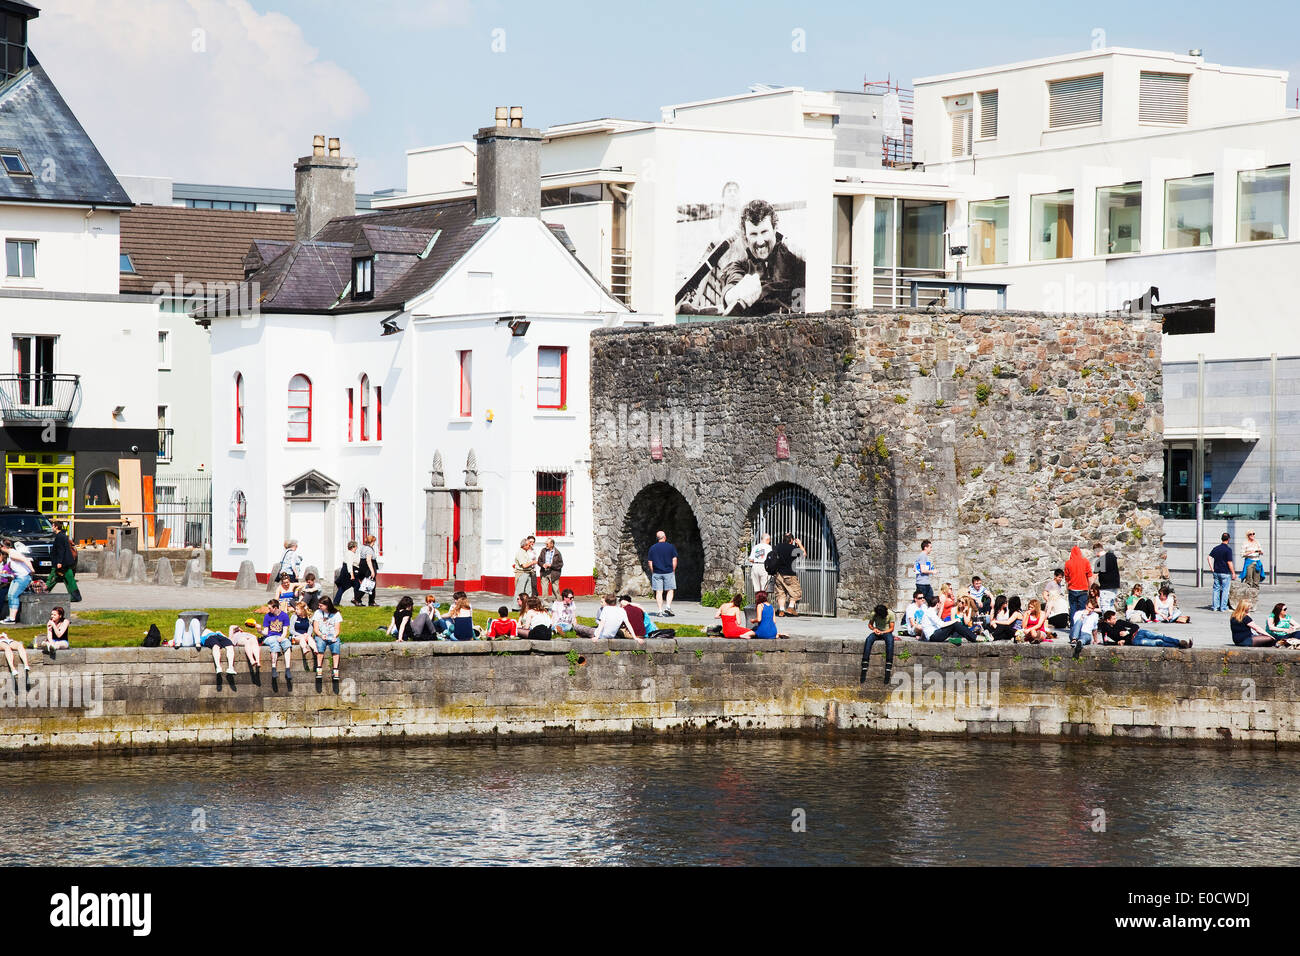 Spanish Arch; Galway City, County Galway, Ireland - Stock Image